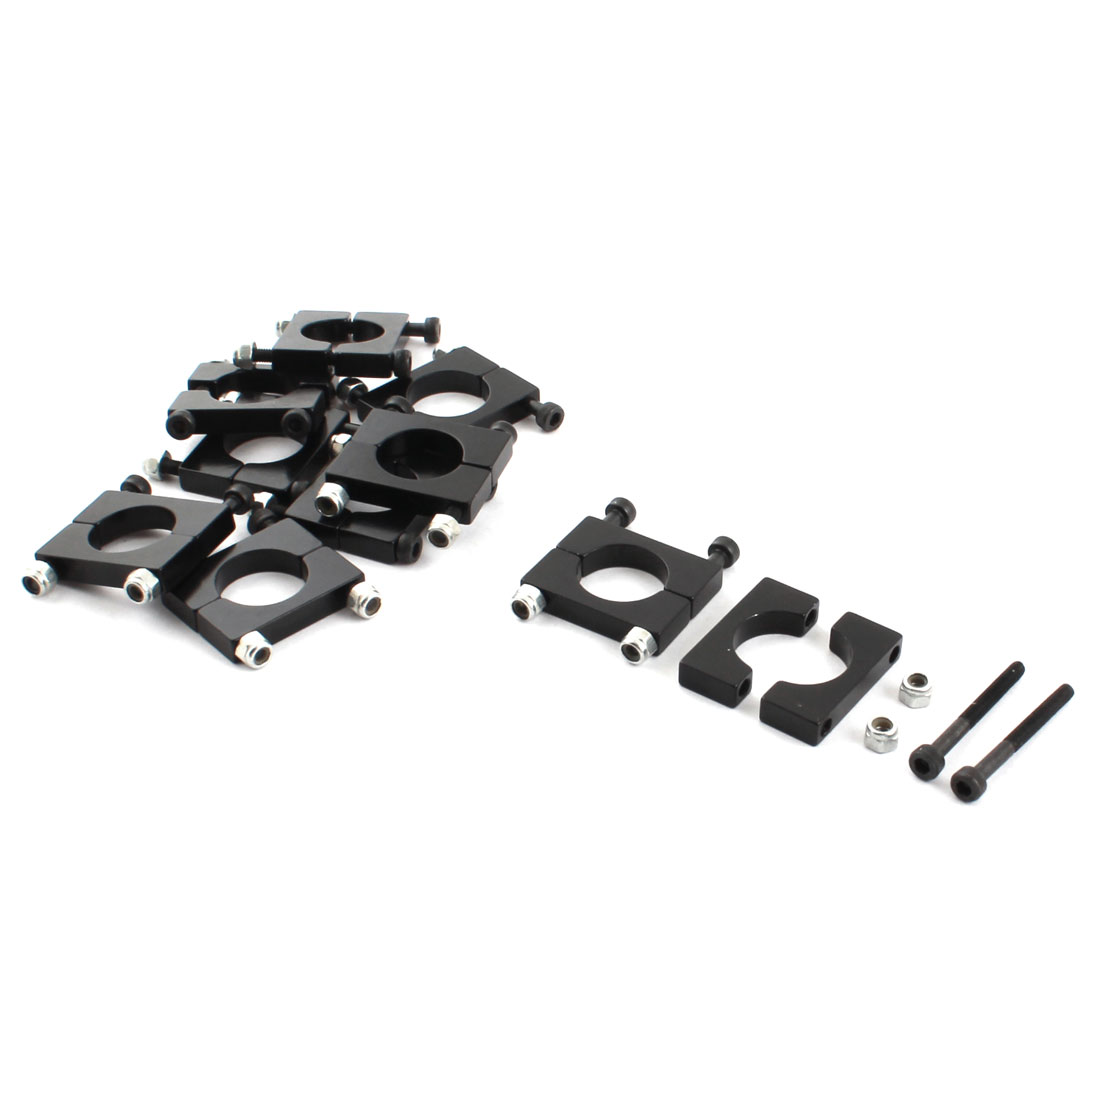 10Pcs 20mm Black Aluminum Clamp for Carbon Fiber Tube RC Quadcopter Hexrcopter